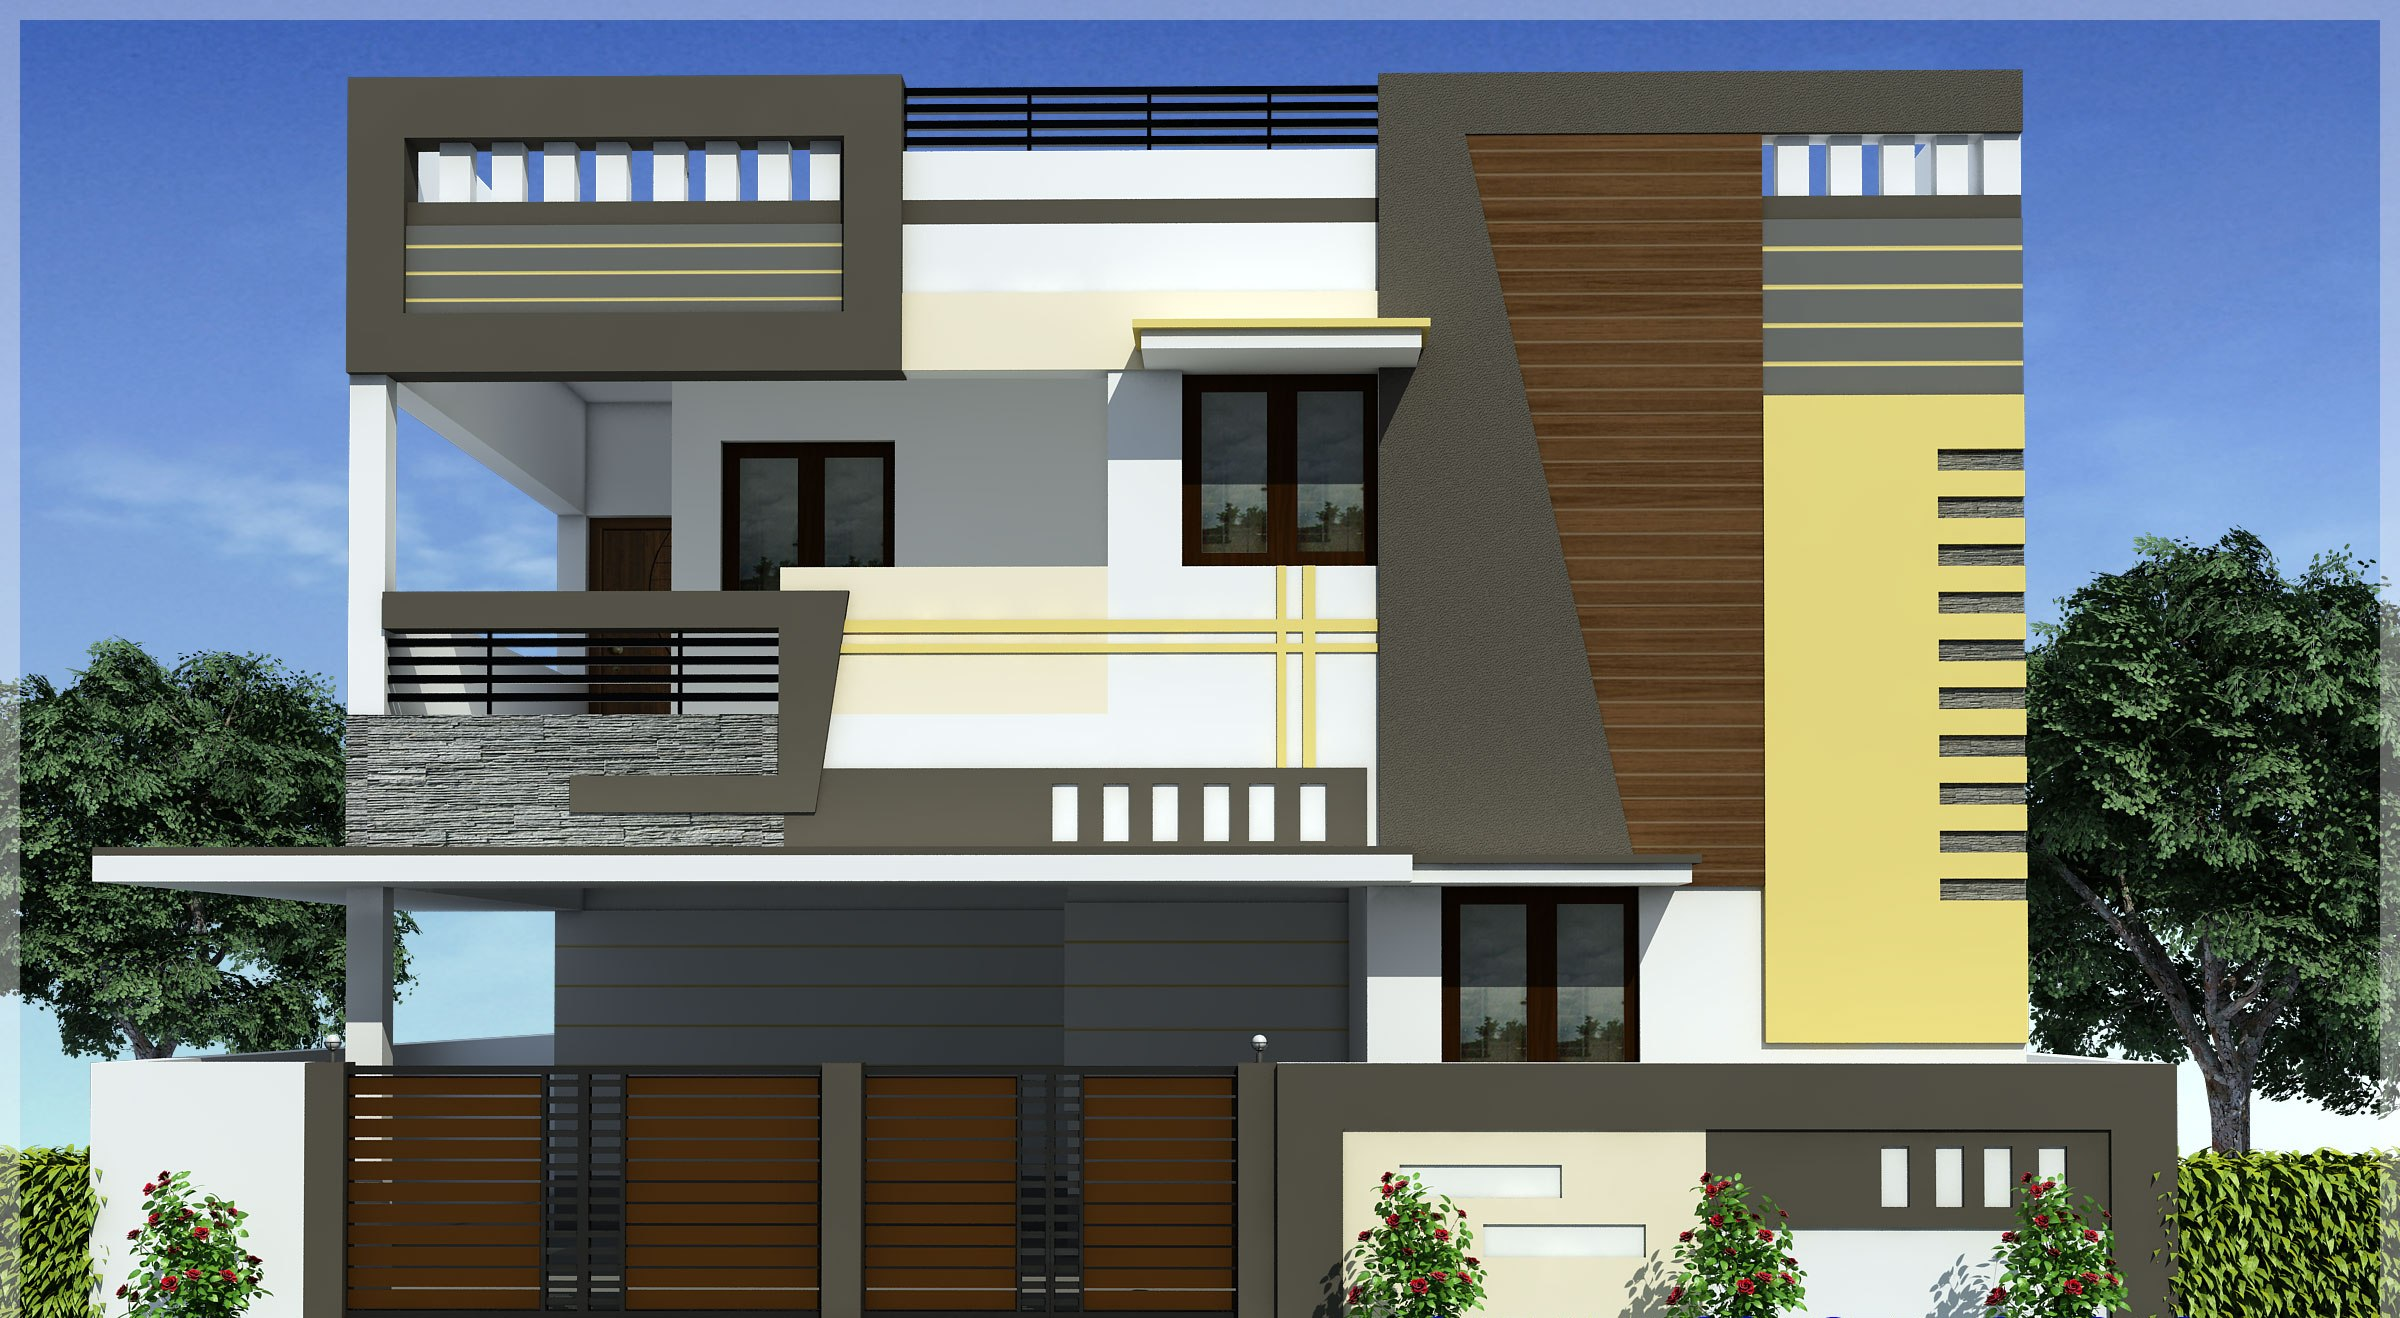 3700 Sqft, 4 BHK House in Thudiyalur